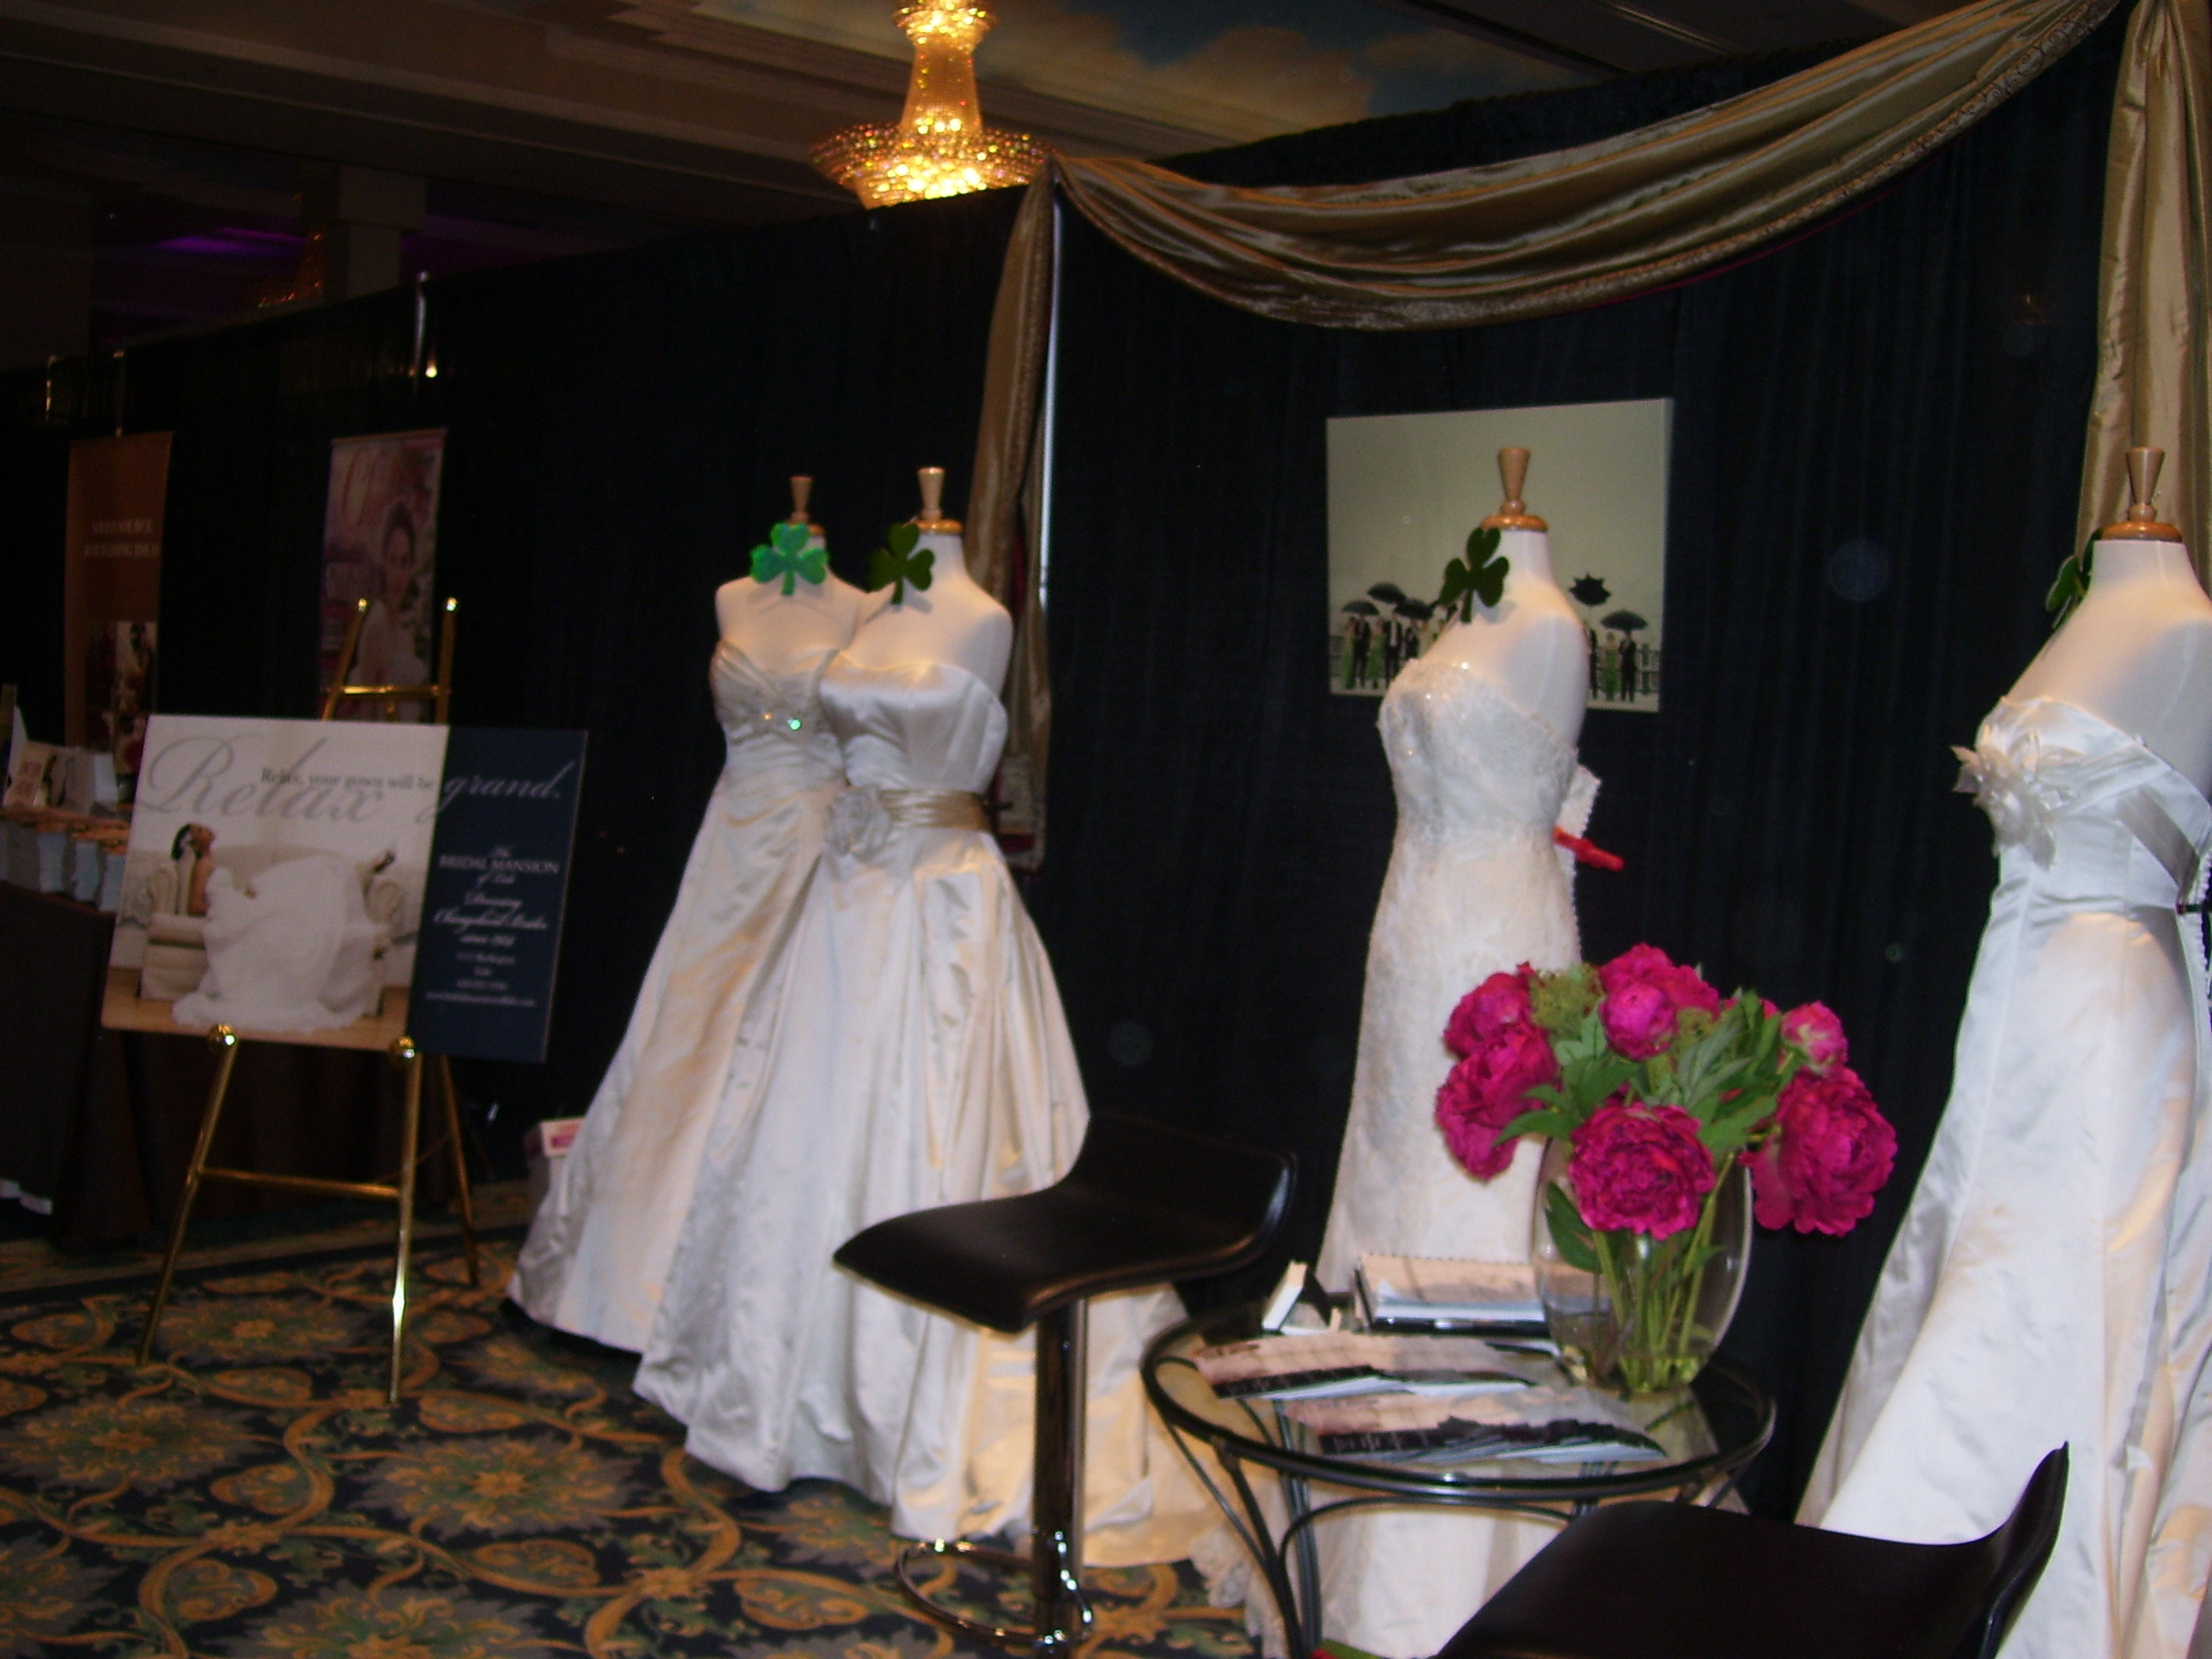 WEDDINGS...by JANE: The Bridal Expo at the Asyana in Downers Grove ...